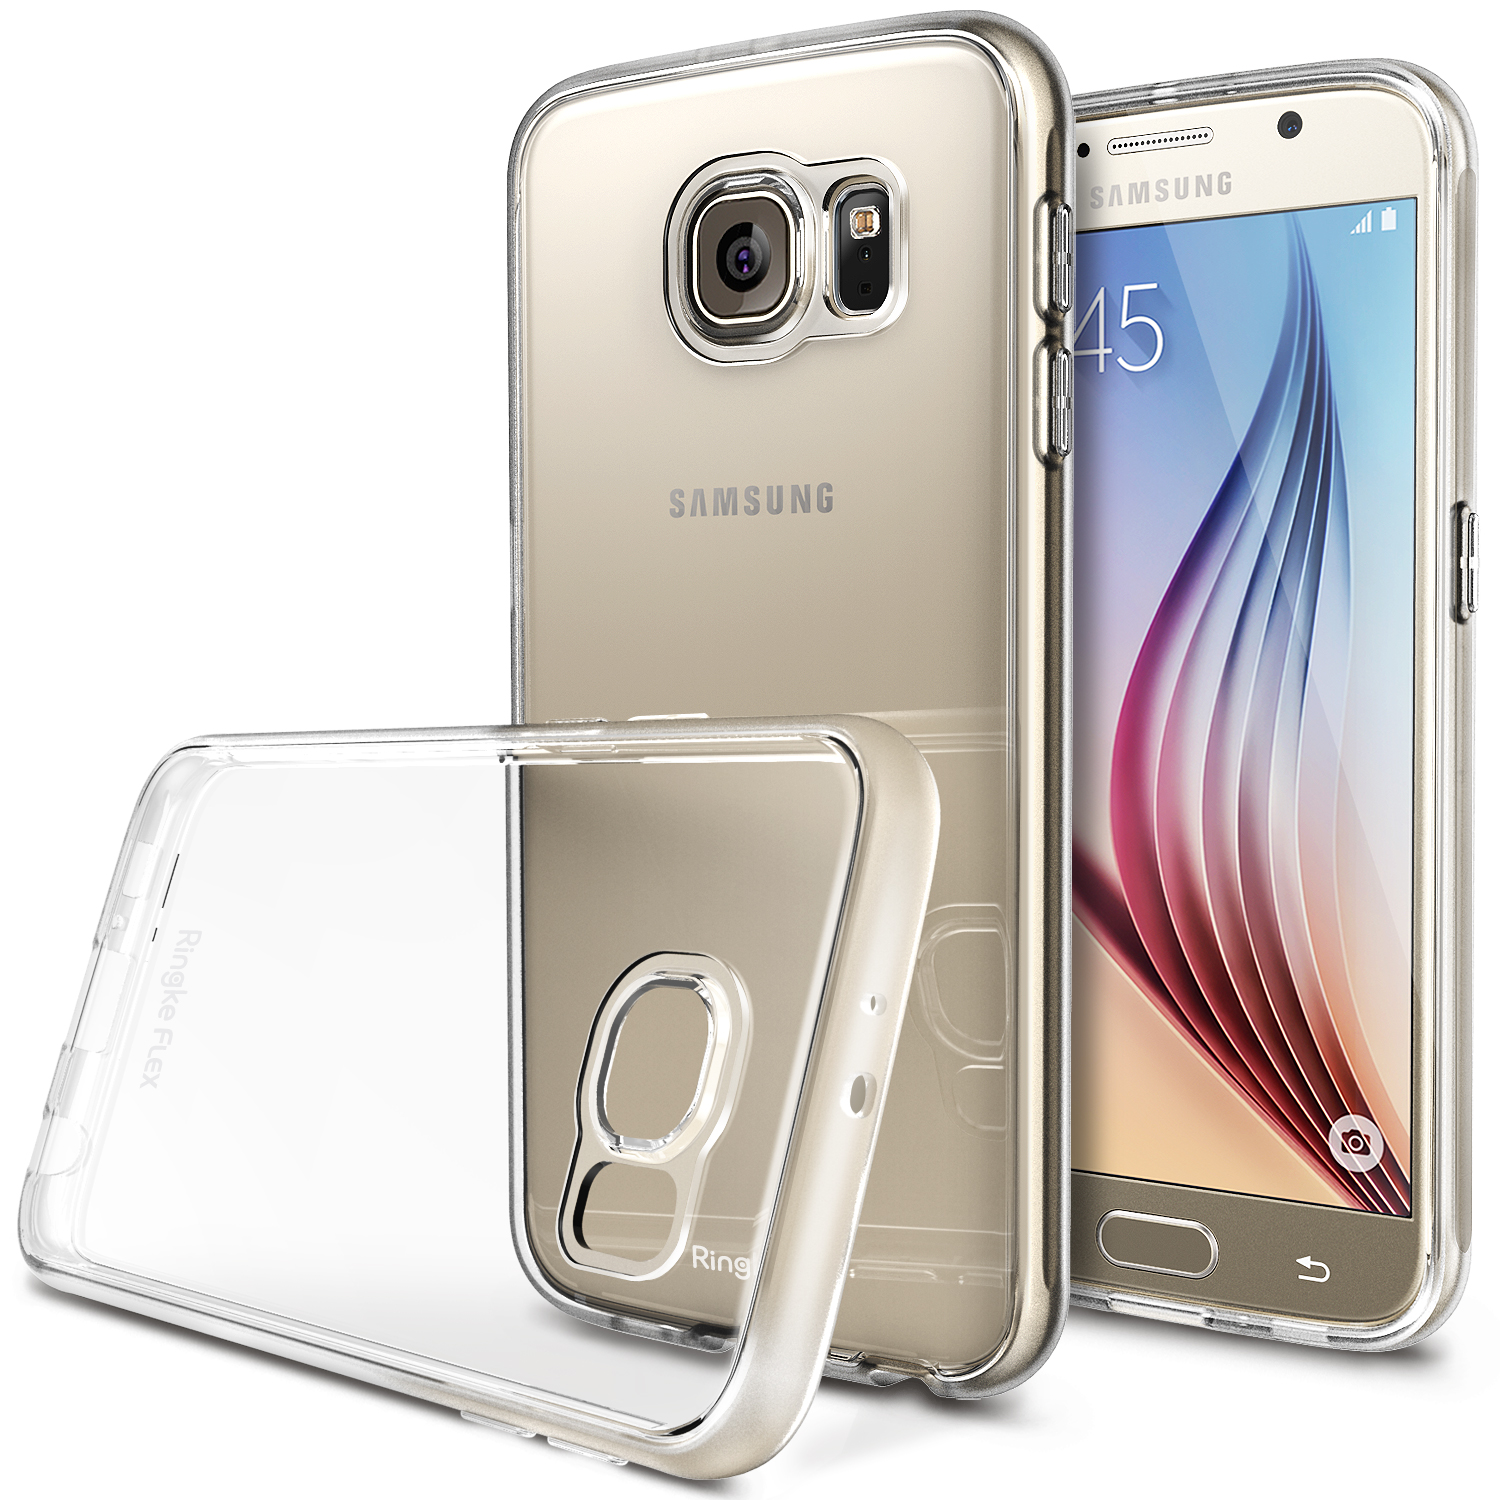 Samsung Galaxy S6 Case, Ringke [Clear] FLEX Series Featuring Flexible Crystal Silicone TPU w/ Free Screen Protector